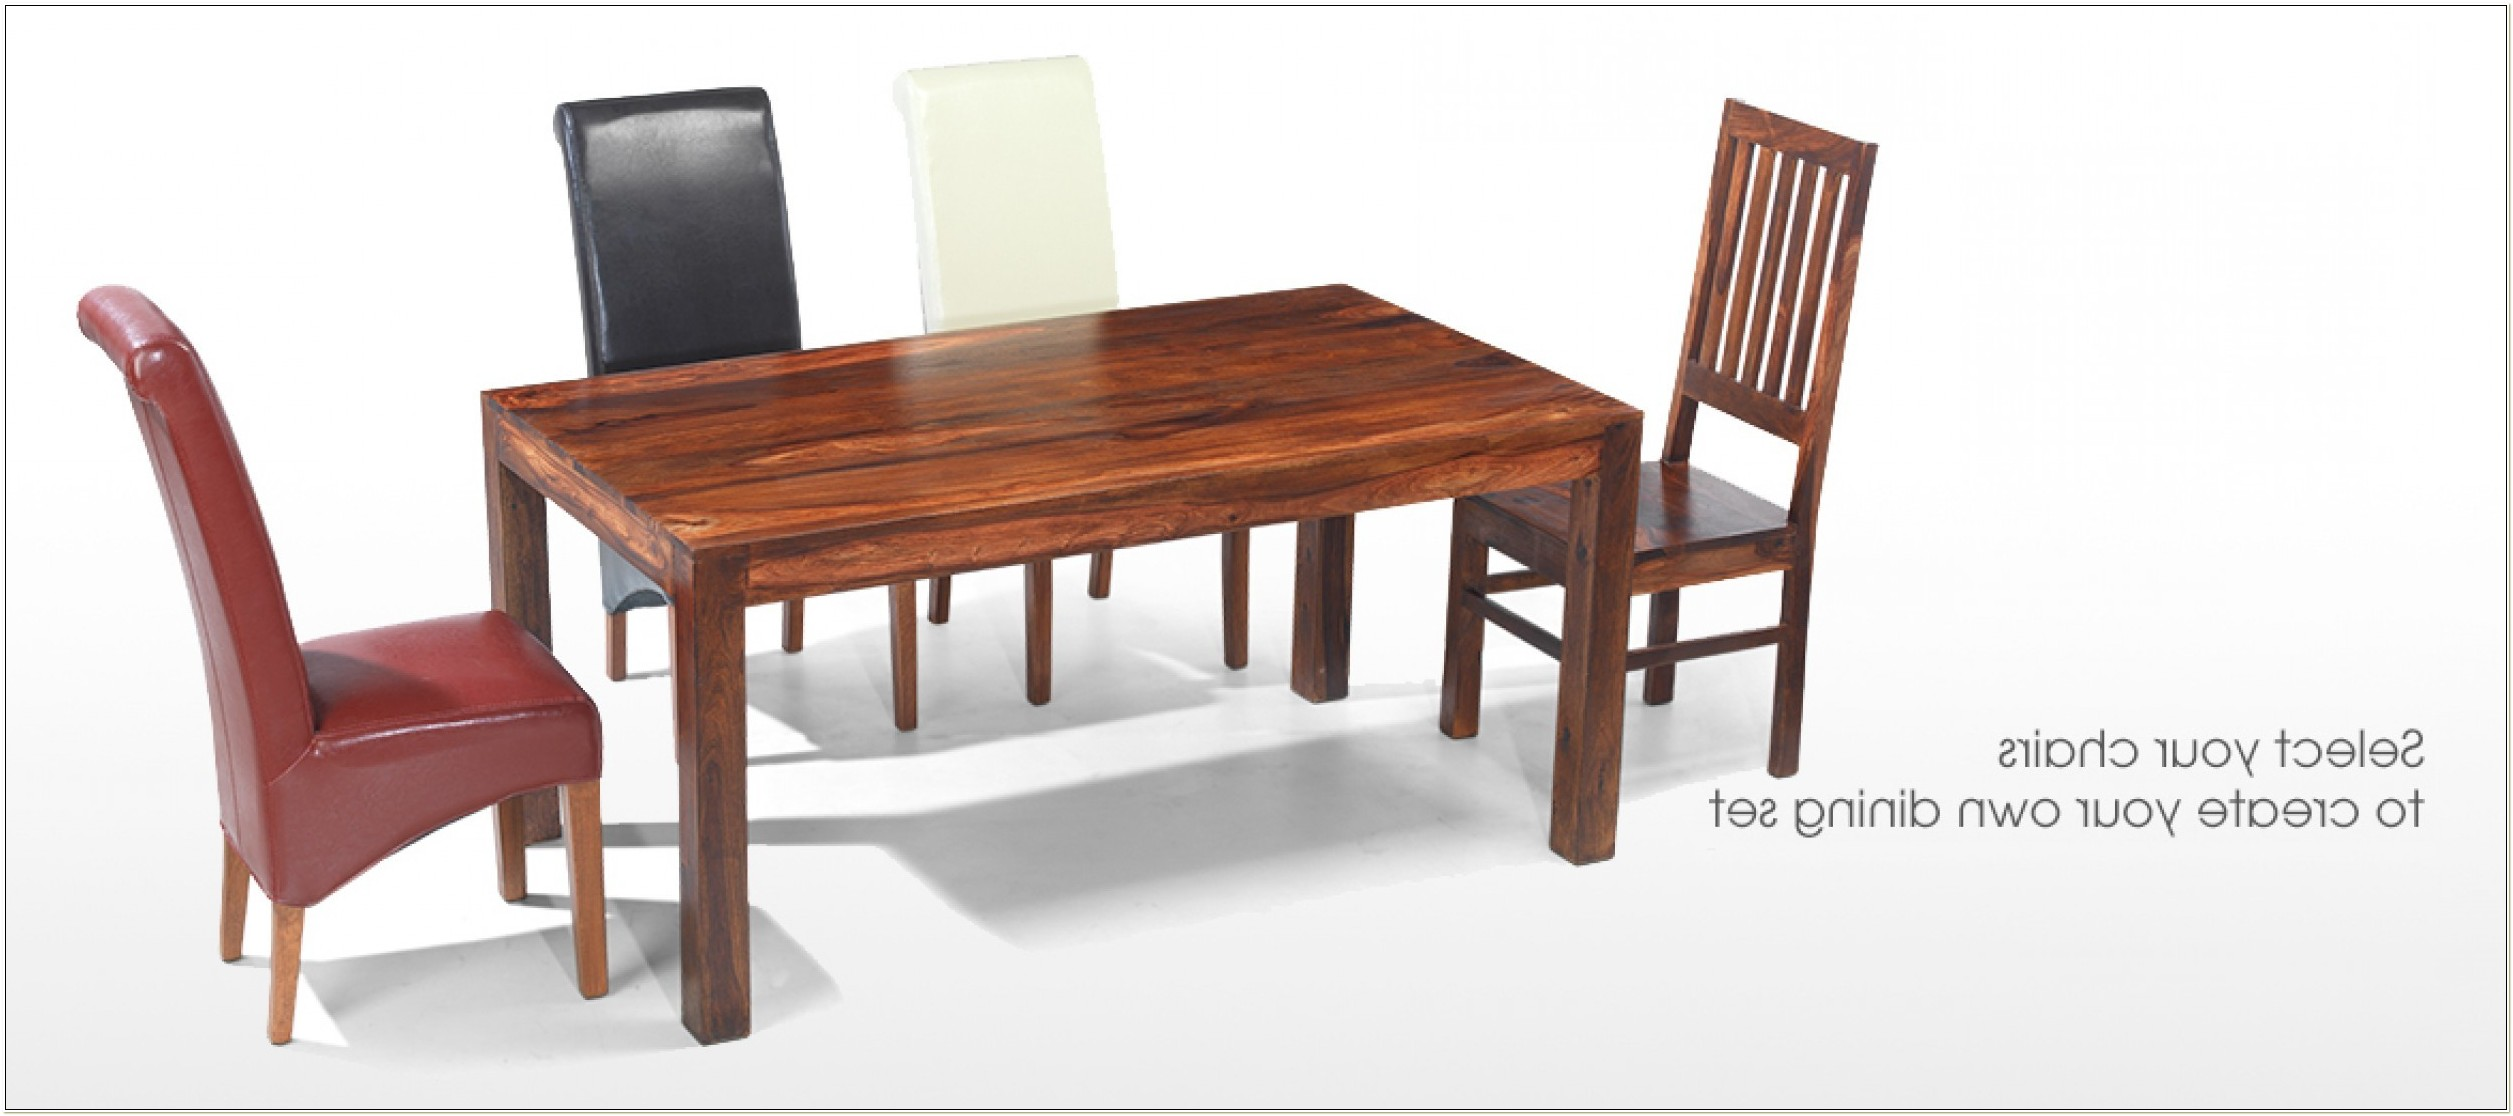 Cube Sheesham Dining Table And Chairs